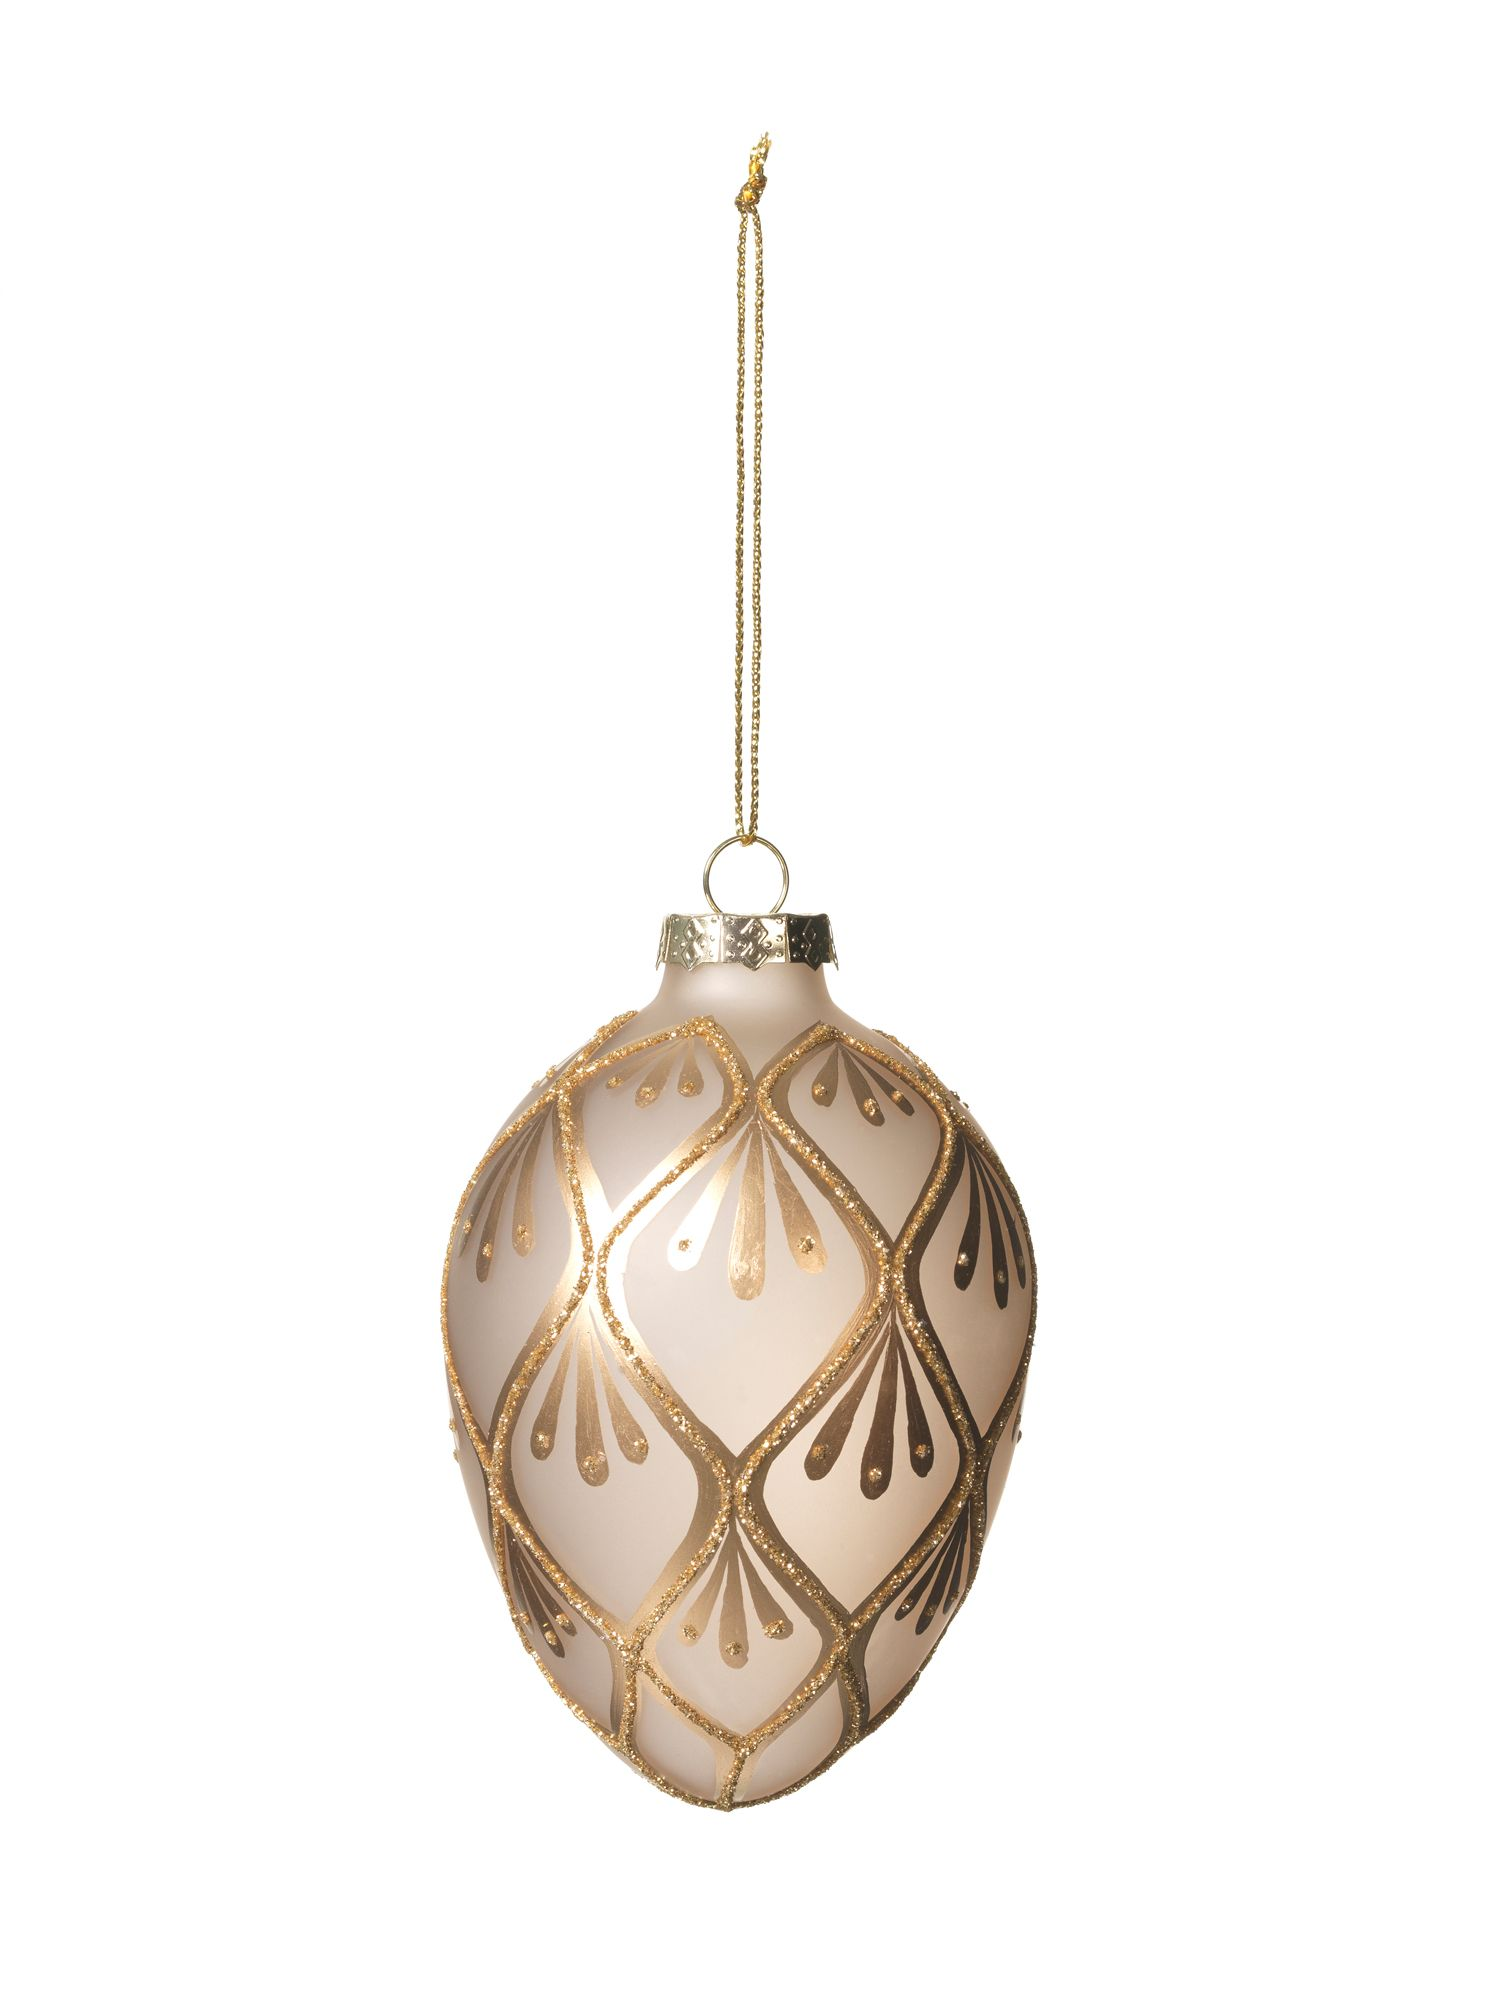 Gold egg ornament